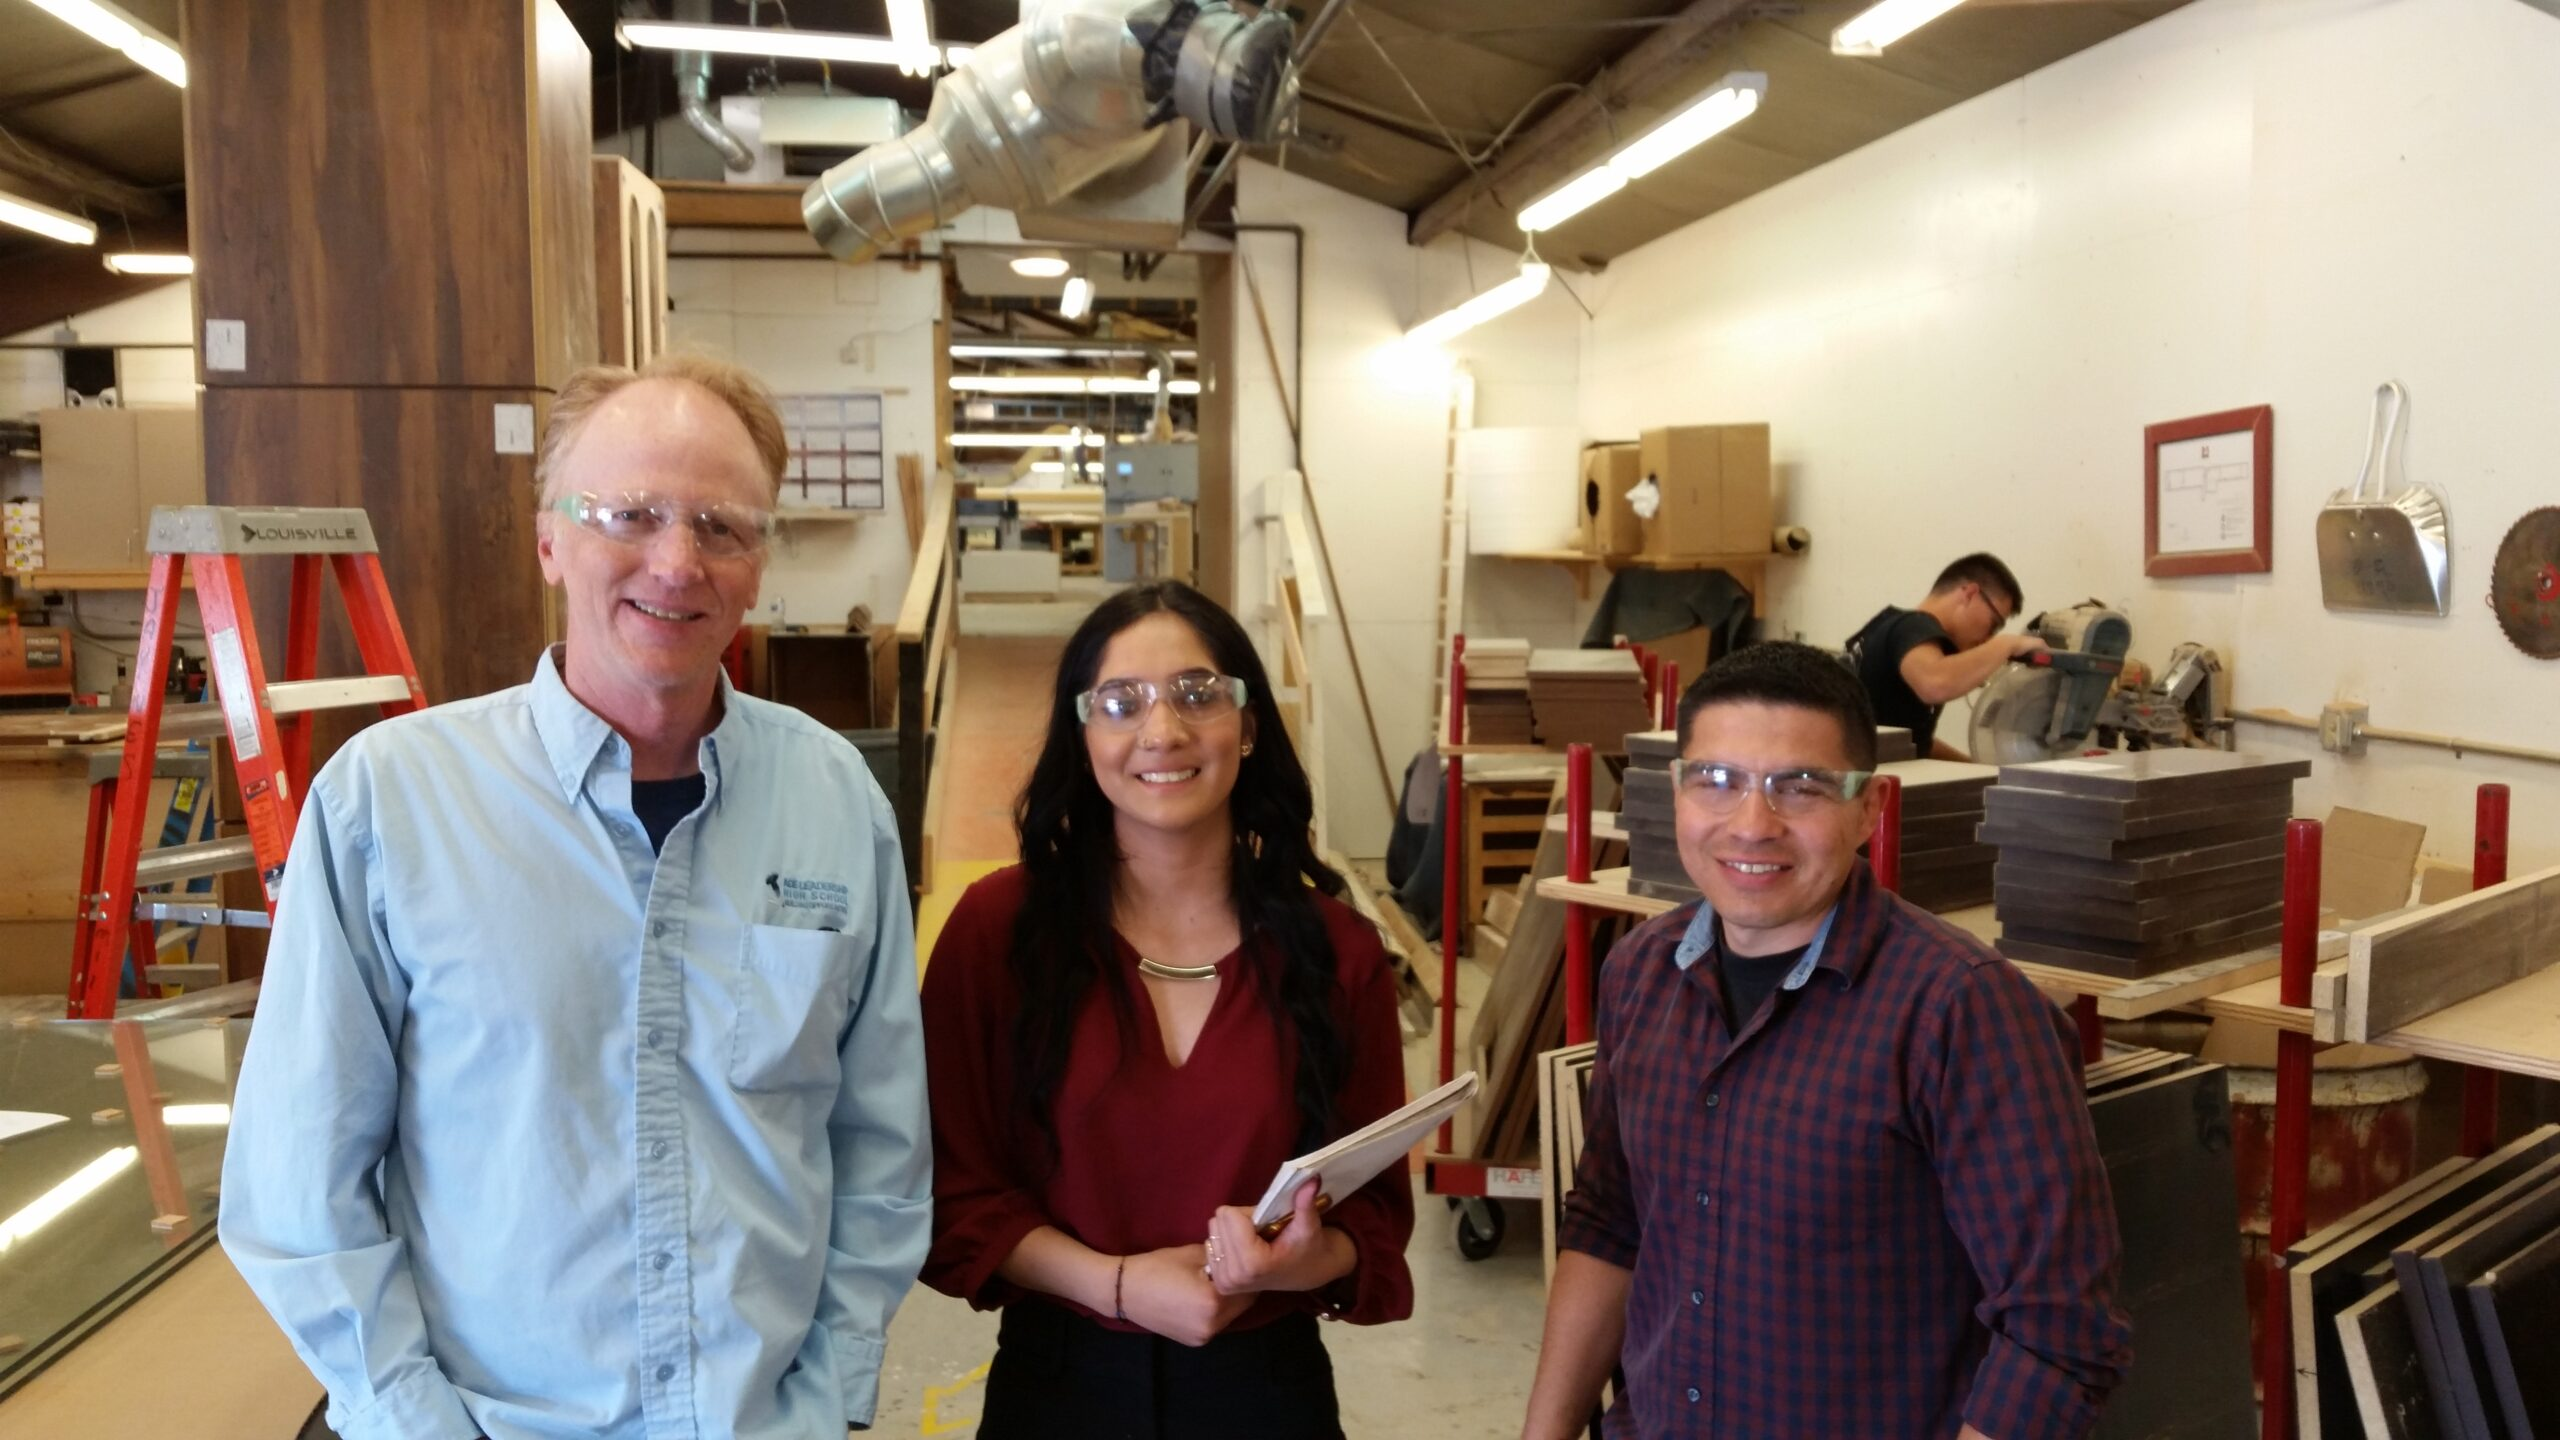 a student stands with her two adult mentors in a workshop, all three wear protective eye wear and hold clipboards